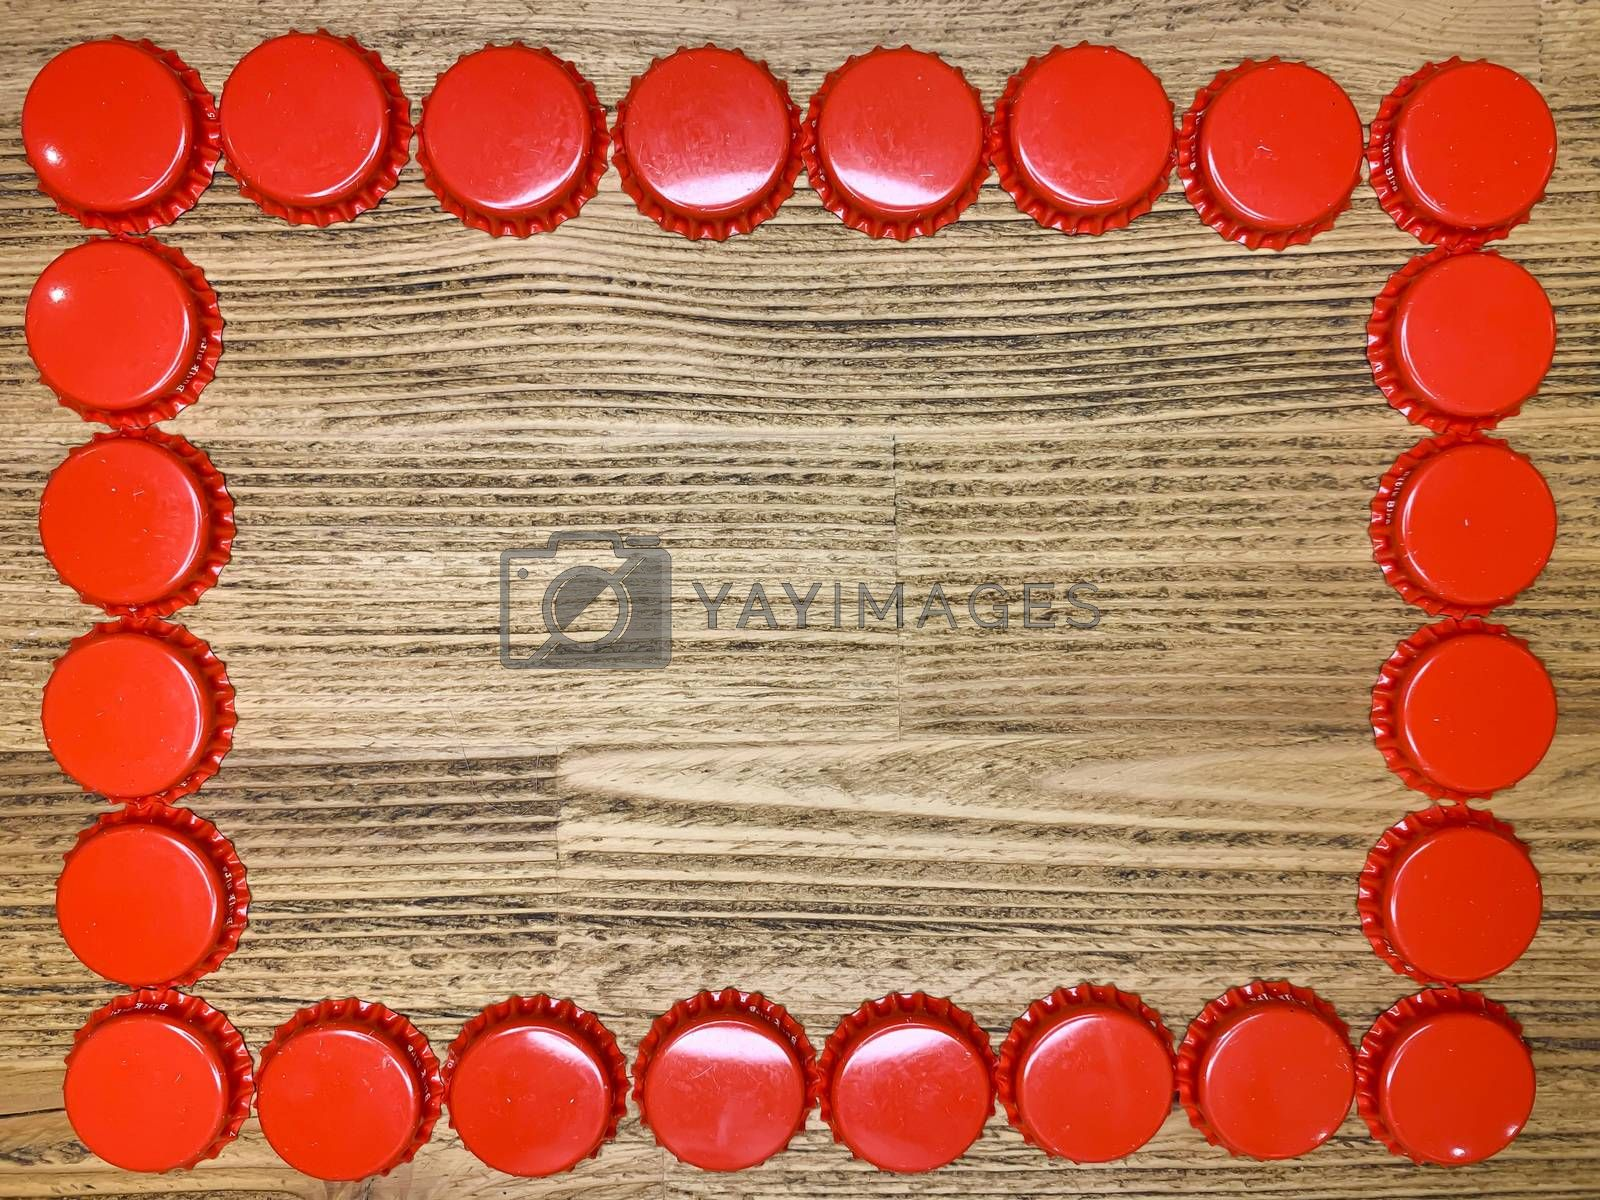 A frame made from red beer bottle tops lids on a rustic wooden table. Beer drinkers postcard concept, top view horizontal stock image with empty space for text